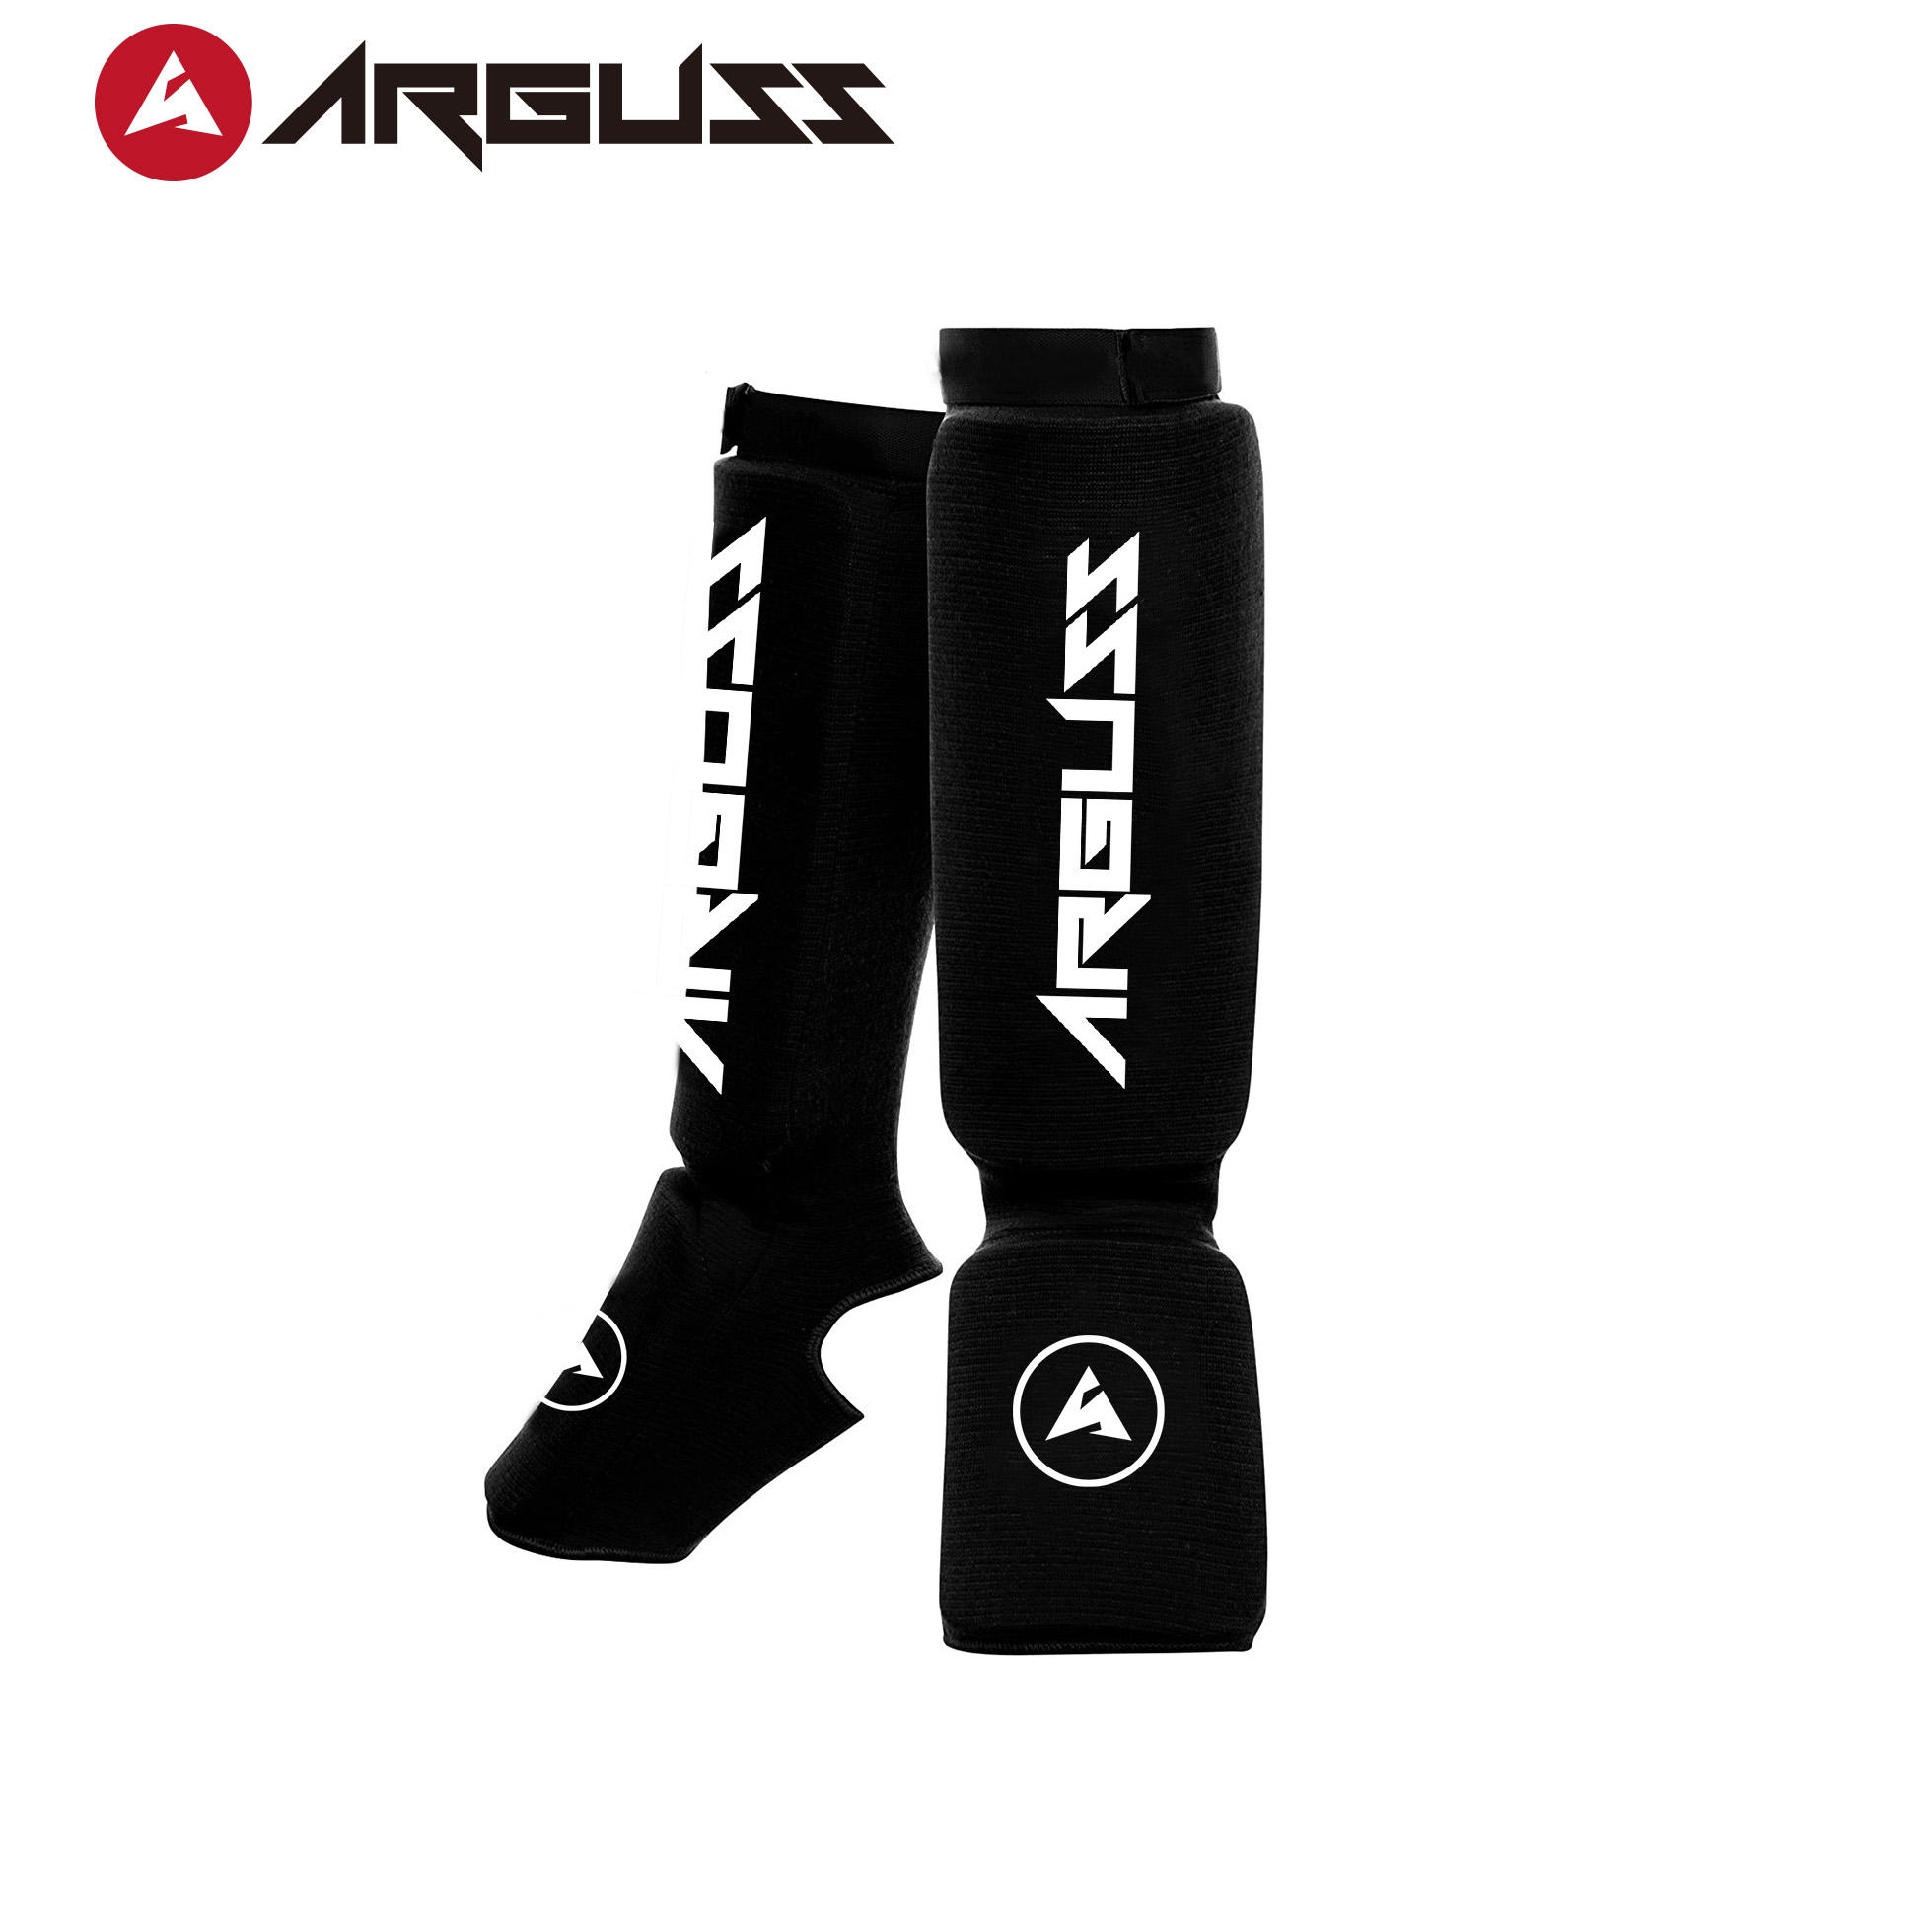 Kickboxing MMA Shin Guards Boxing Training Equipment Competition Muay Thai Shin Guards Shin and Instep Guards